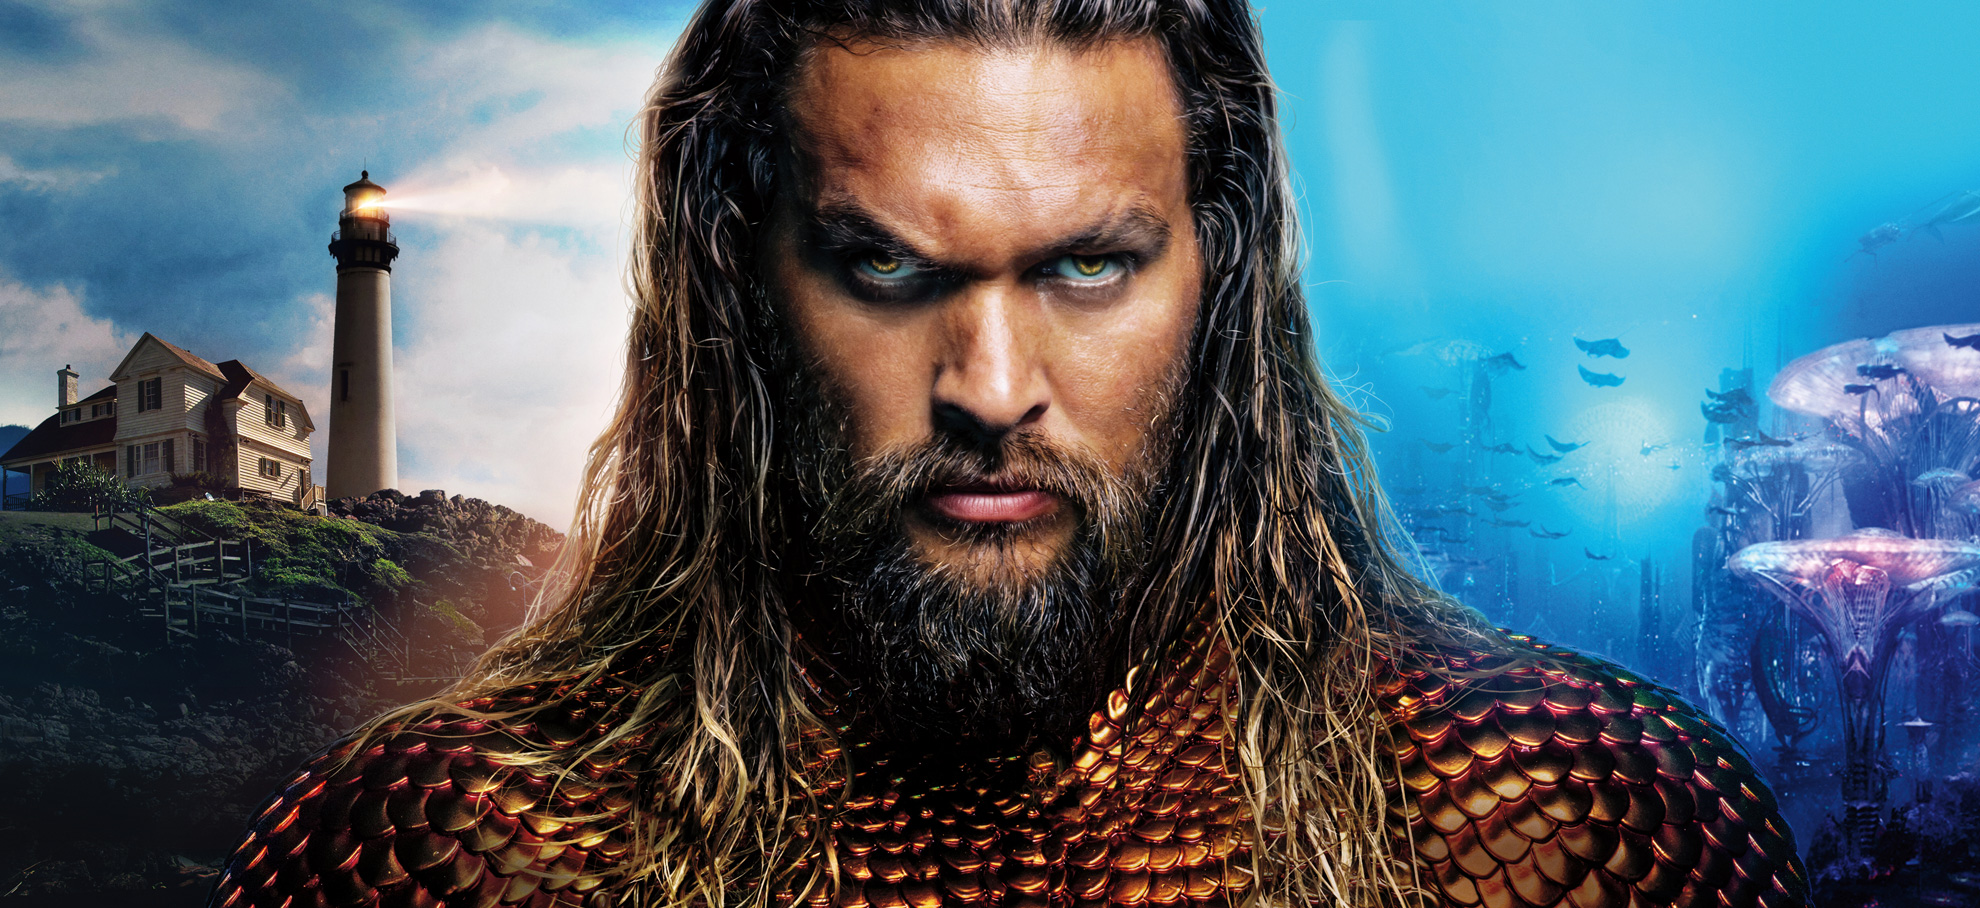 Hd Broly Wallpaper Fondos Aquaman 2018 Wallpapers Aquaman Dc Comics